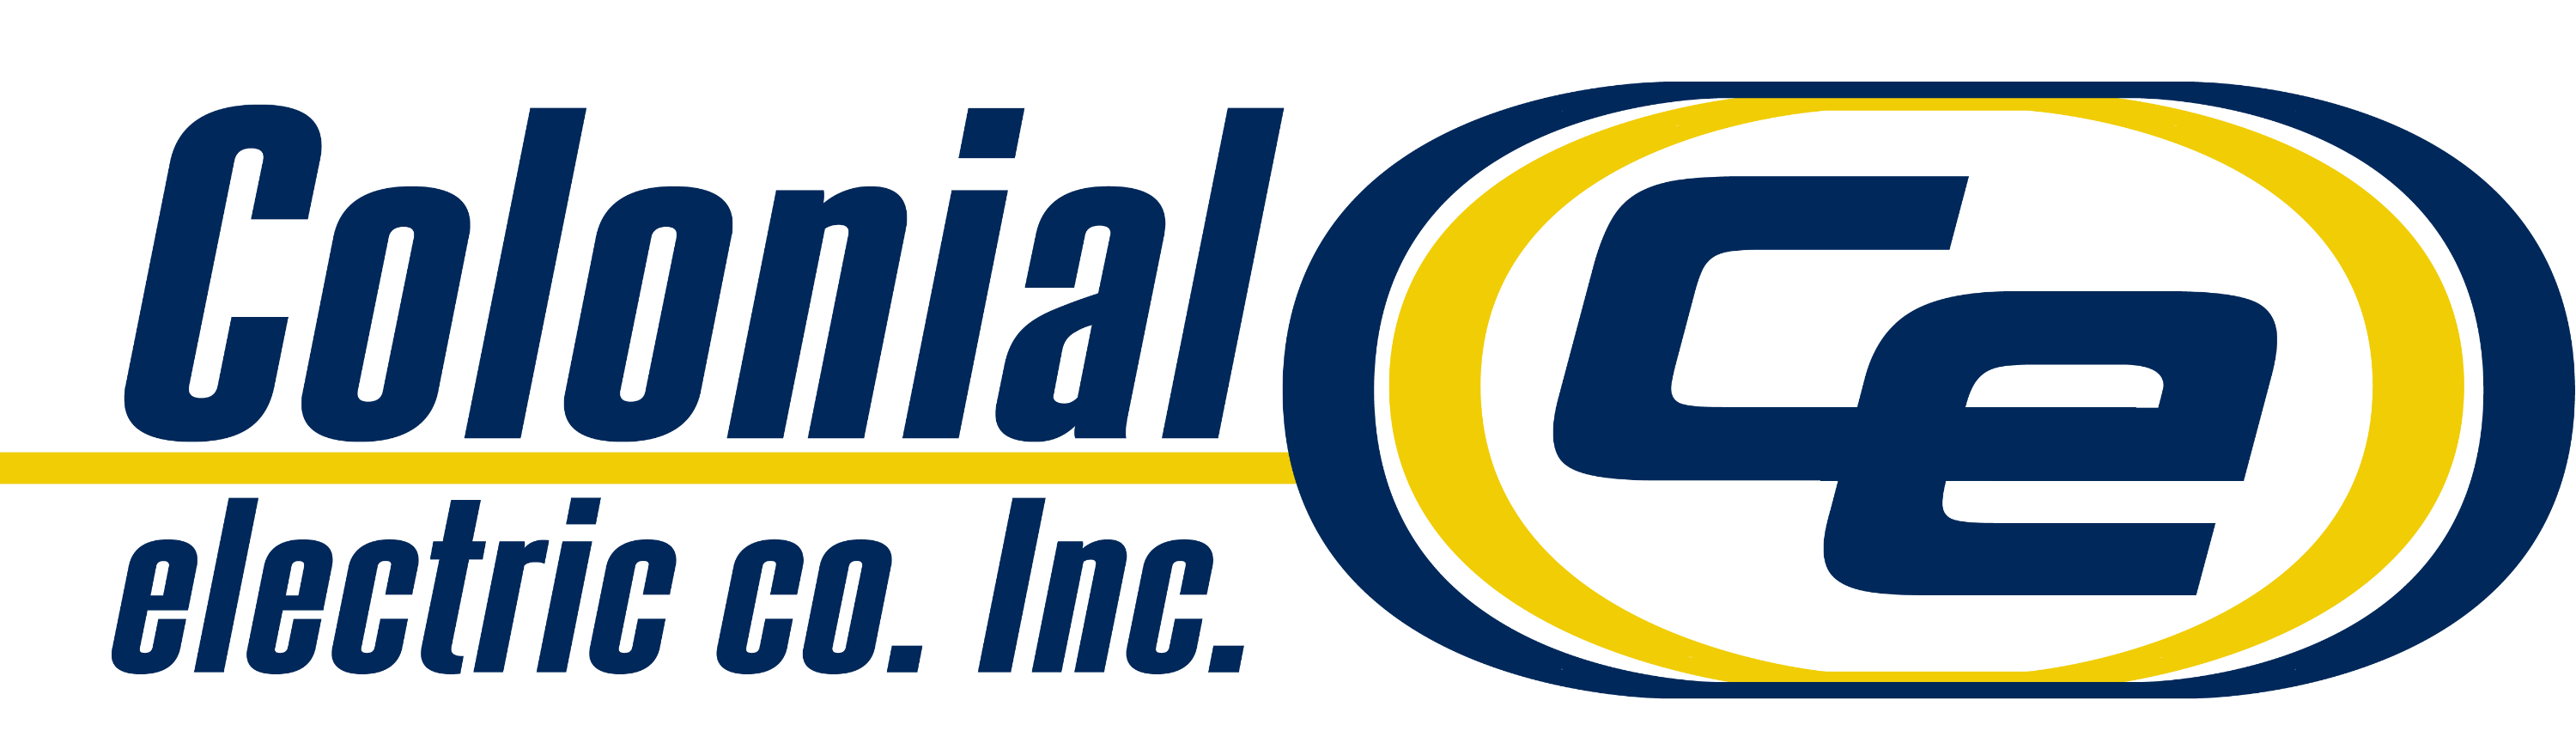 Colonial Electric Co. Inc.